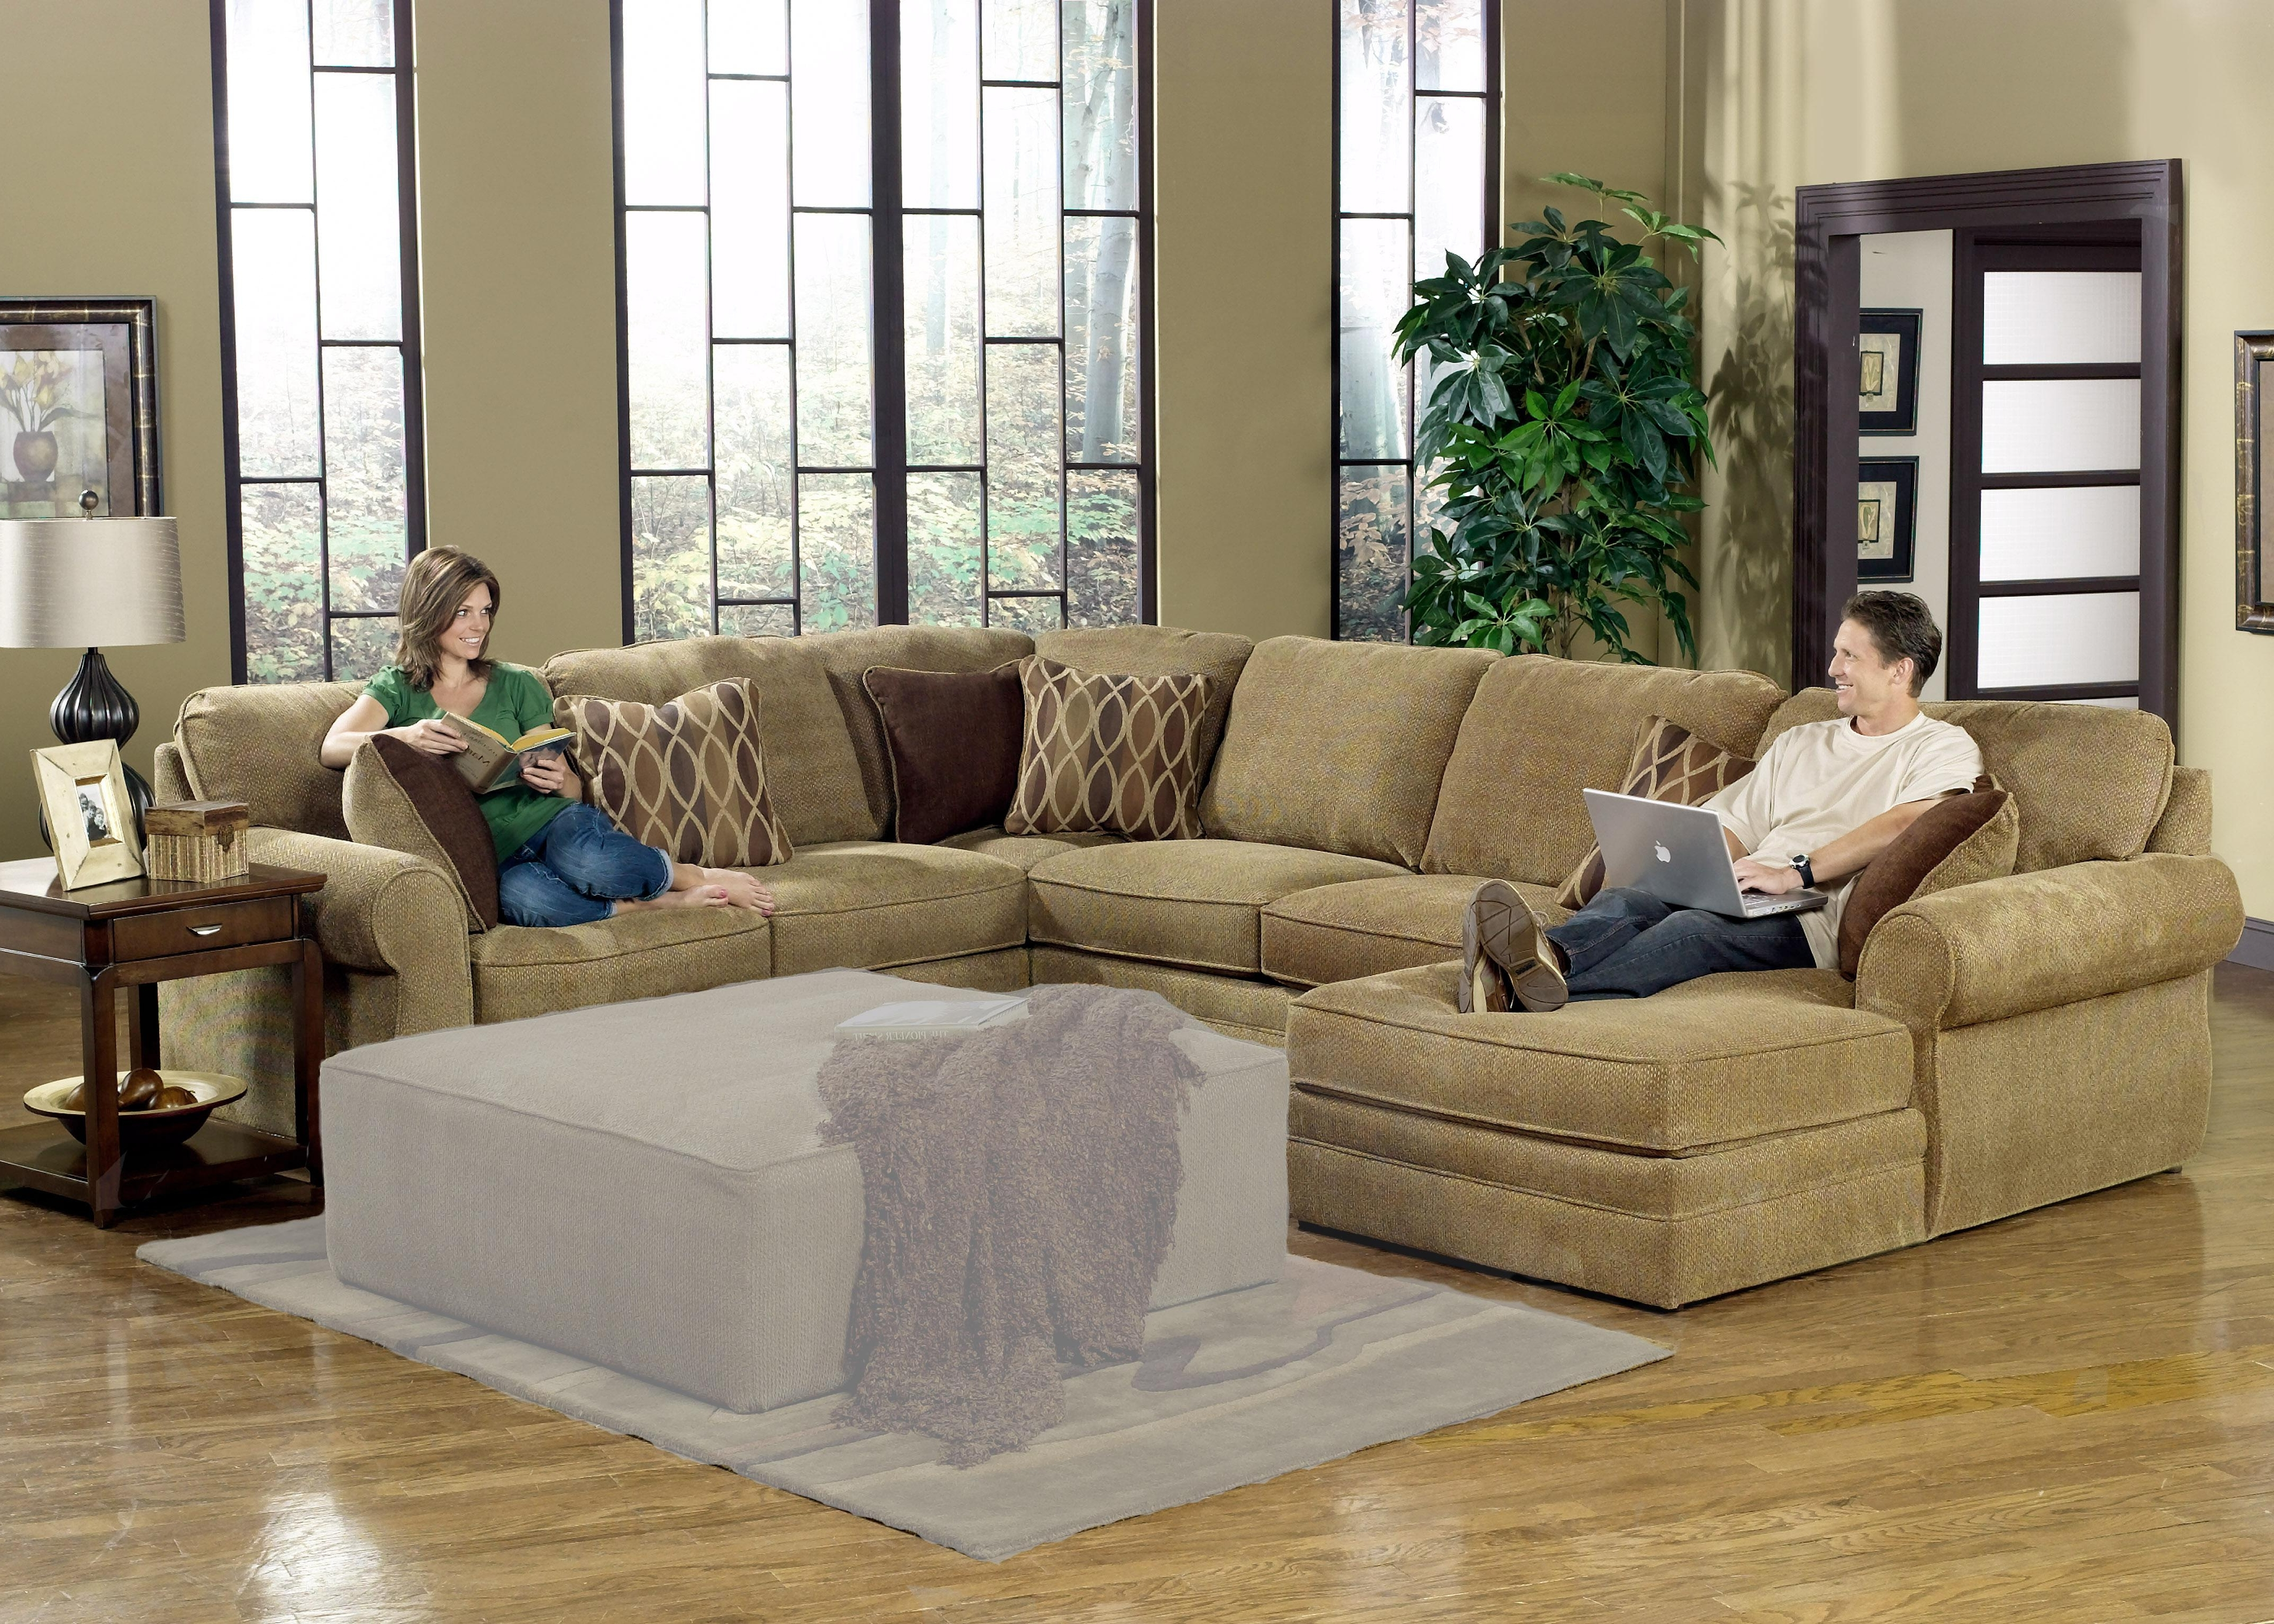 Preferred Long Couches With Chaise With Regard To Sectional Sofa Design: Adorable Large U Shaped Sectional Sofa (View 11 of 15)